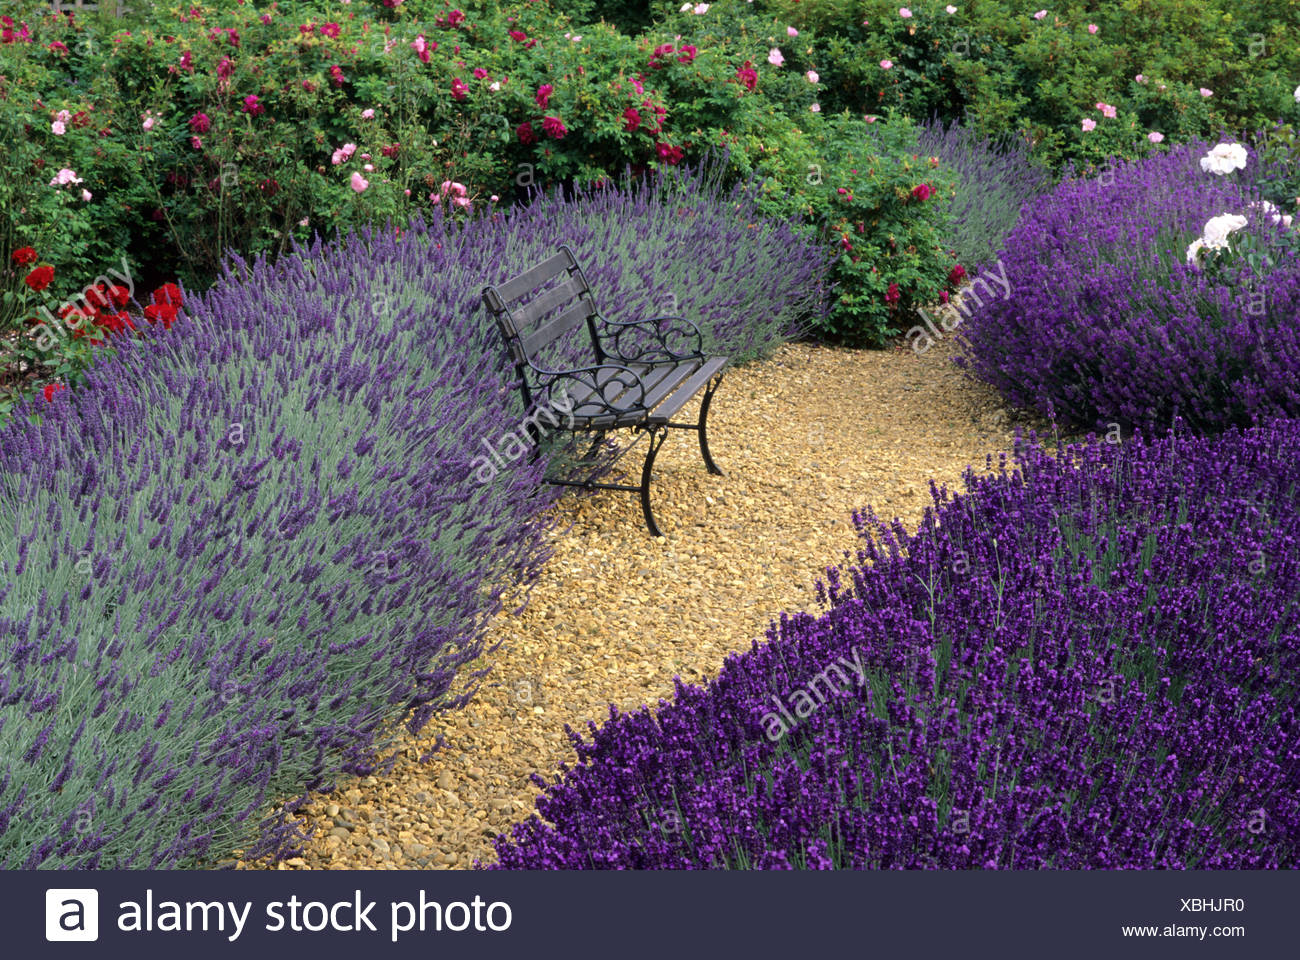 Lavandula Angustifolia U0027Imperial Gemu0027 And Lavandula Angustifolia U0027Sawyersu0027,  Garden Bench, Furniture, Roses, Gravel Path